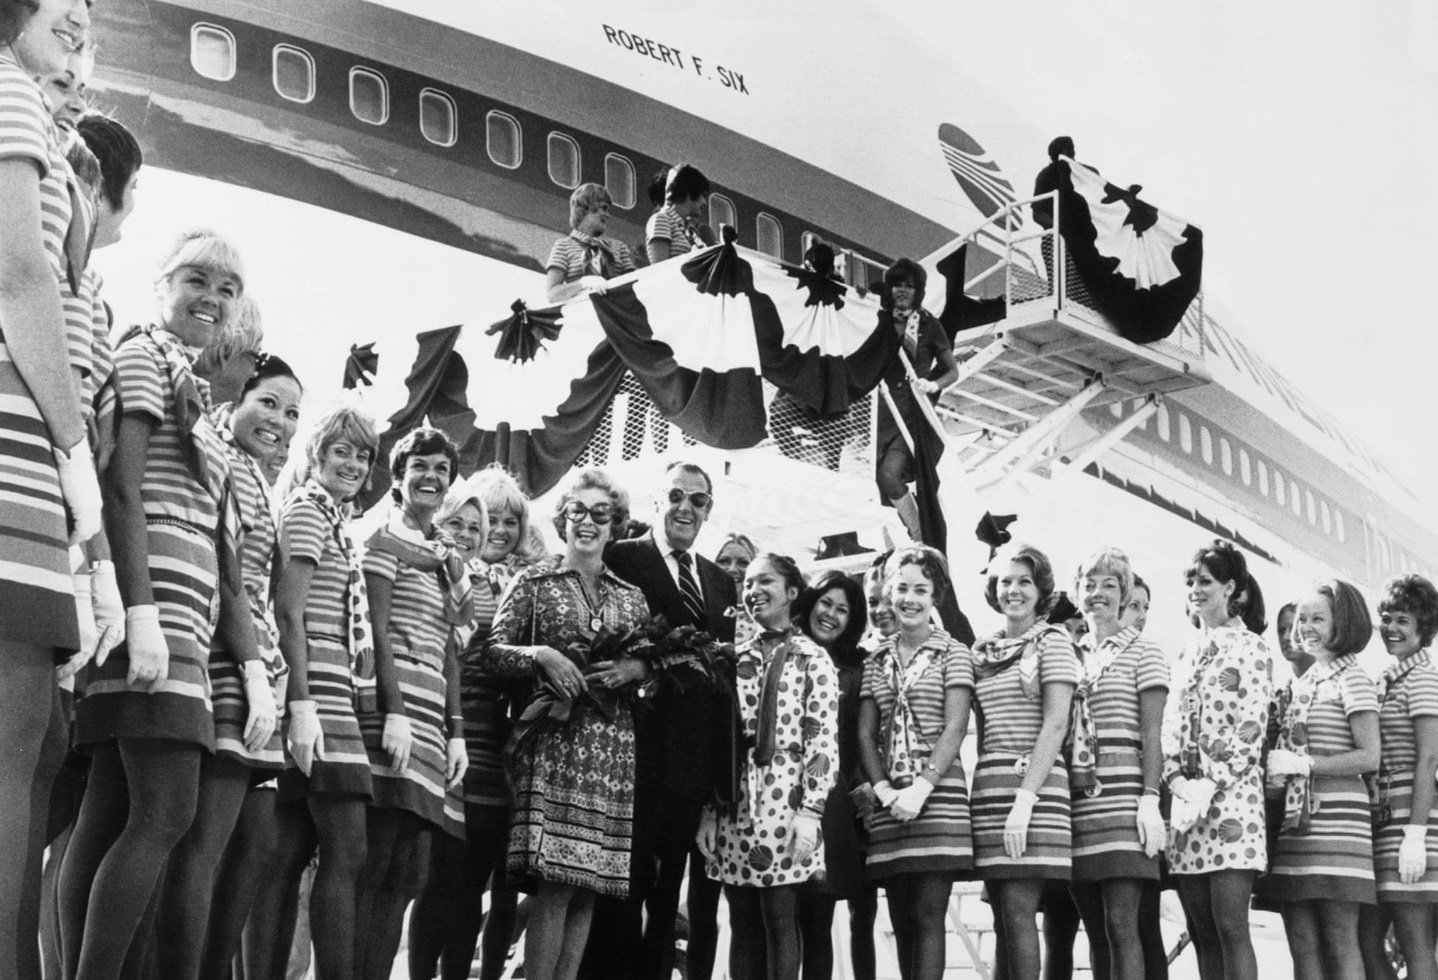 Robert F. Six with his wife, actress Audrey Meadows, and Continental Airlines flight attendants at the dedication of Continental's Boeing 747 named after Six, 1971